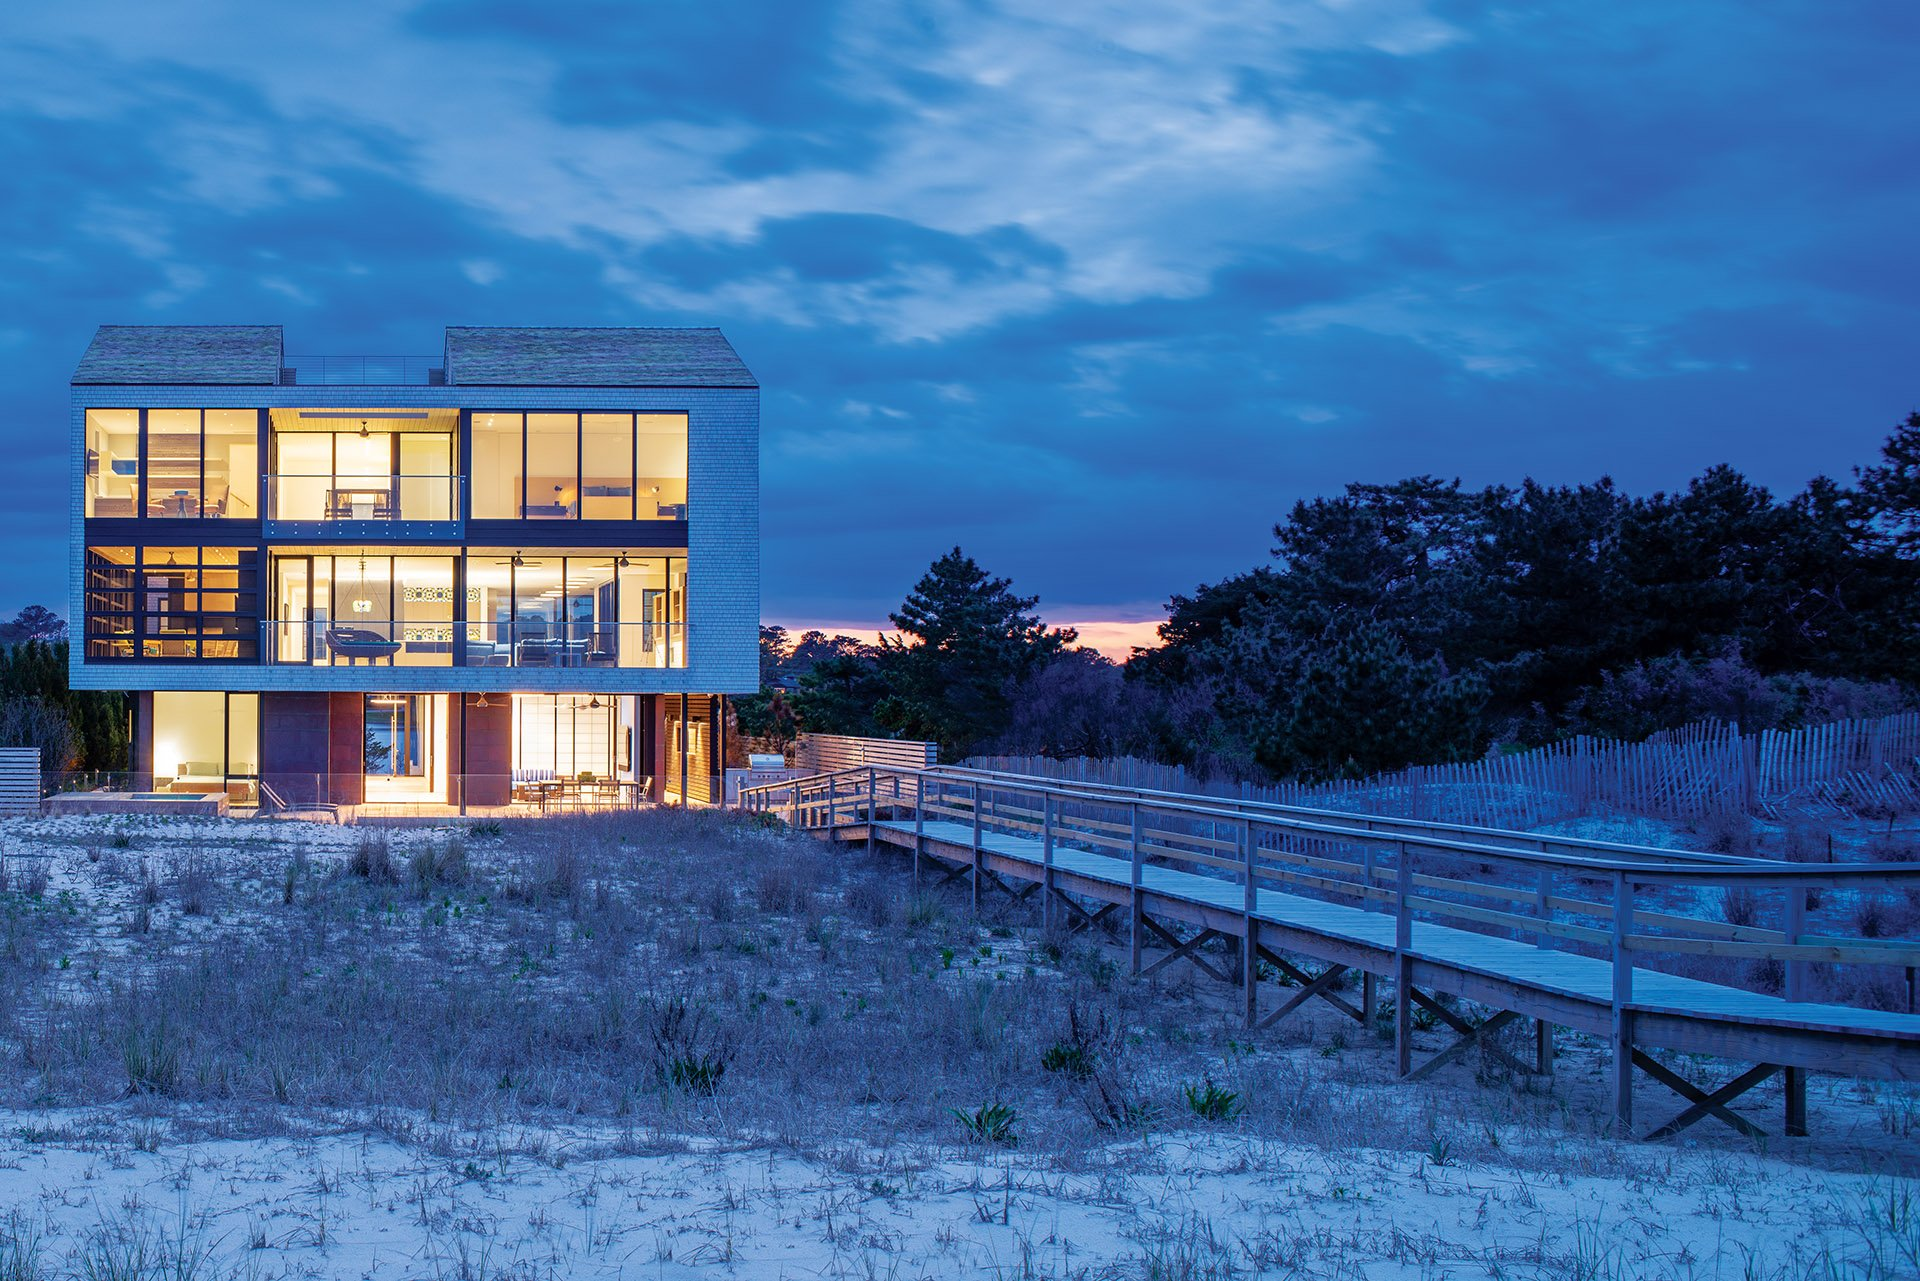 Beach home glass-rimmed upper levels cantilever over the pool terrace